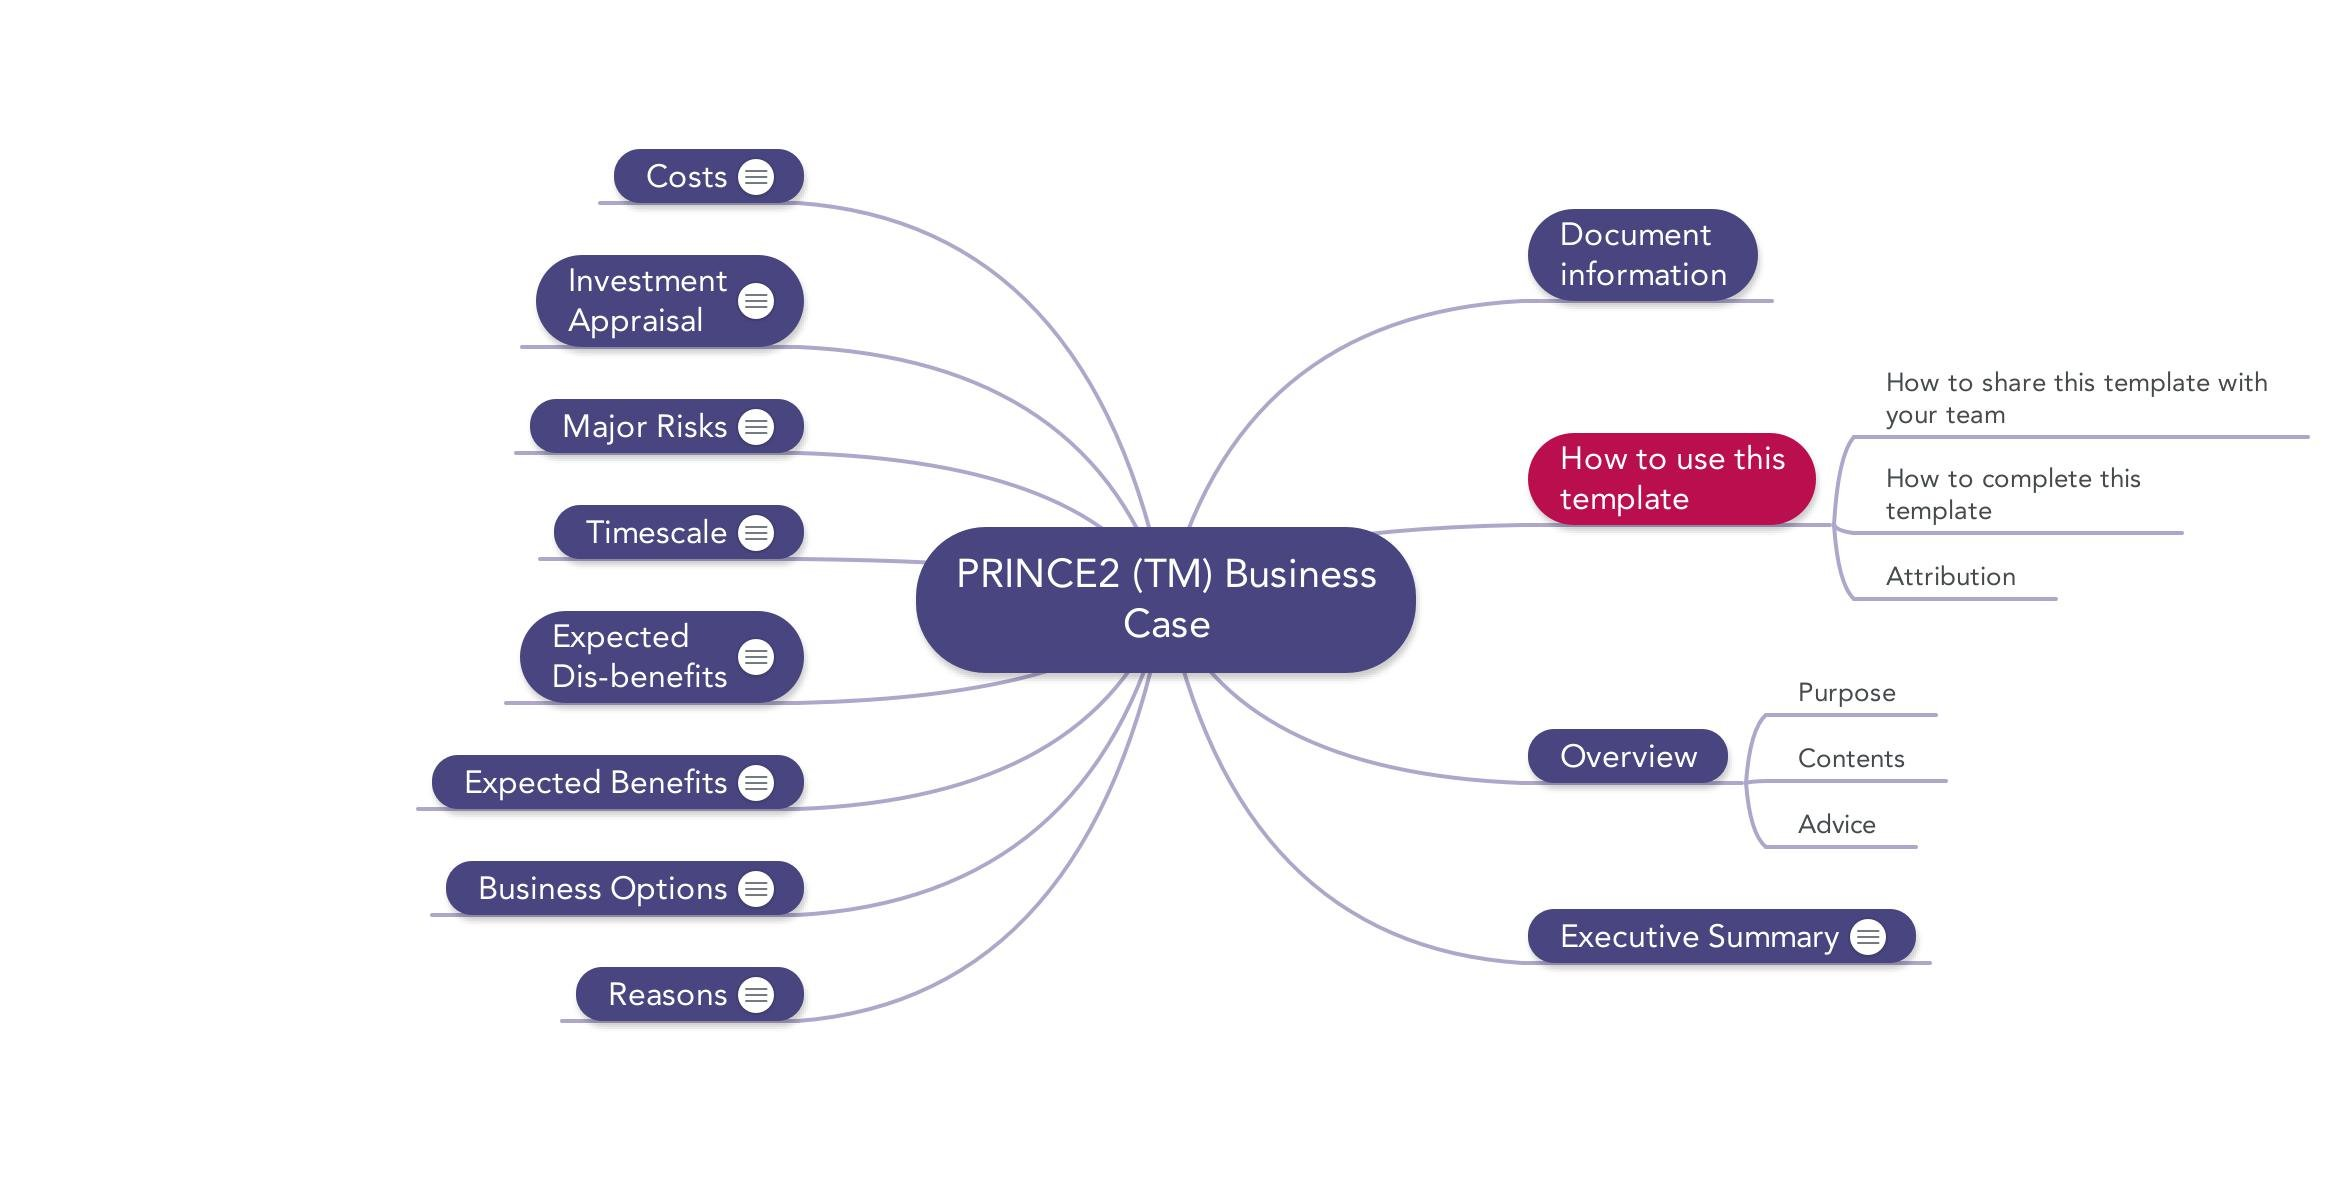 Prince2 business case download template prince2 business case cheaphphosting Images